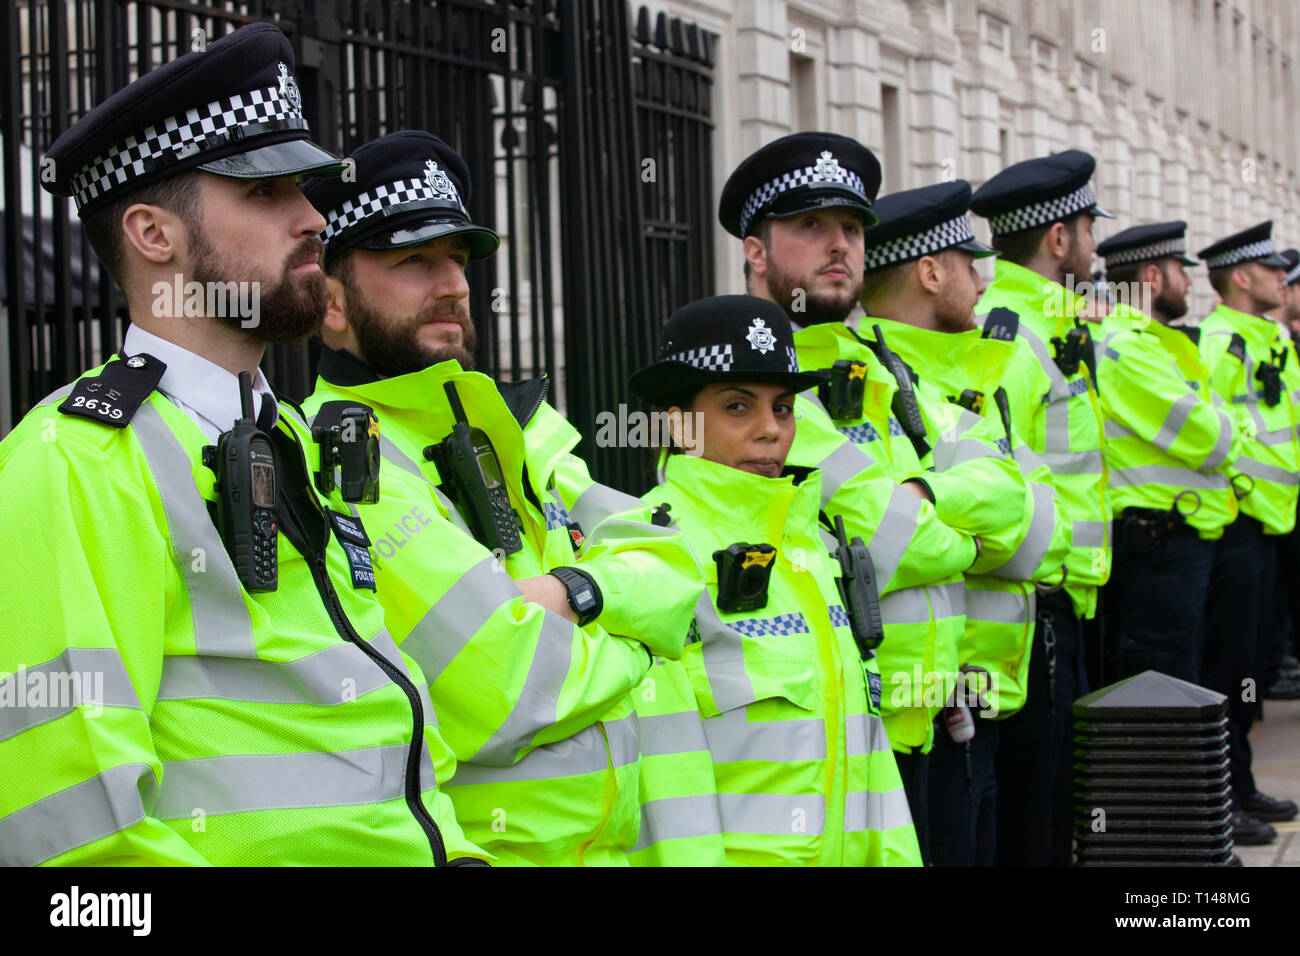 London, UK. 23rd March, 2019. The People's Vote March in London: police guard the gates of Downing Street on Whitehall as protesters passed by, often booing. Credit: Anna Watson/Alamy Live News - Stock Image